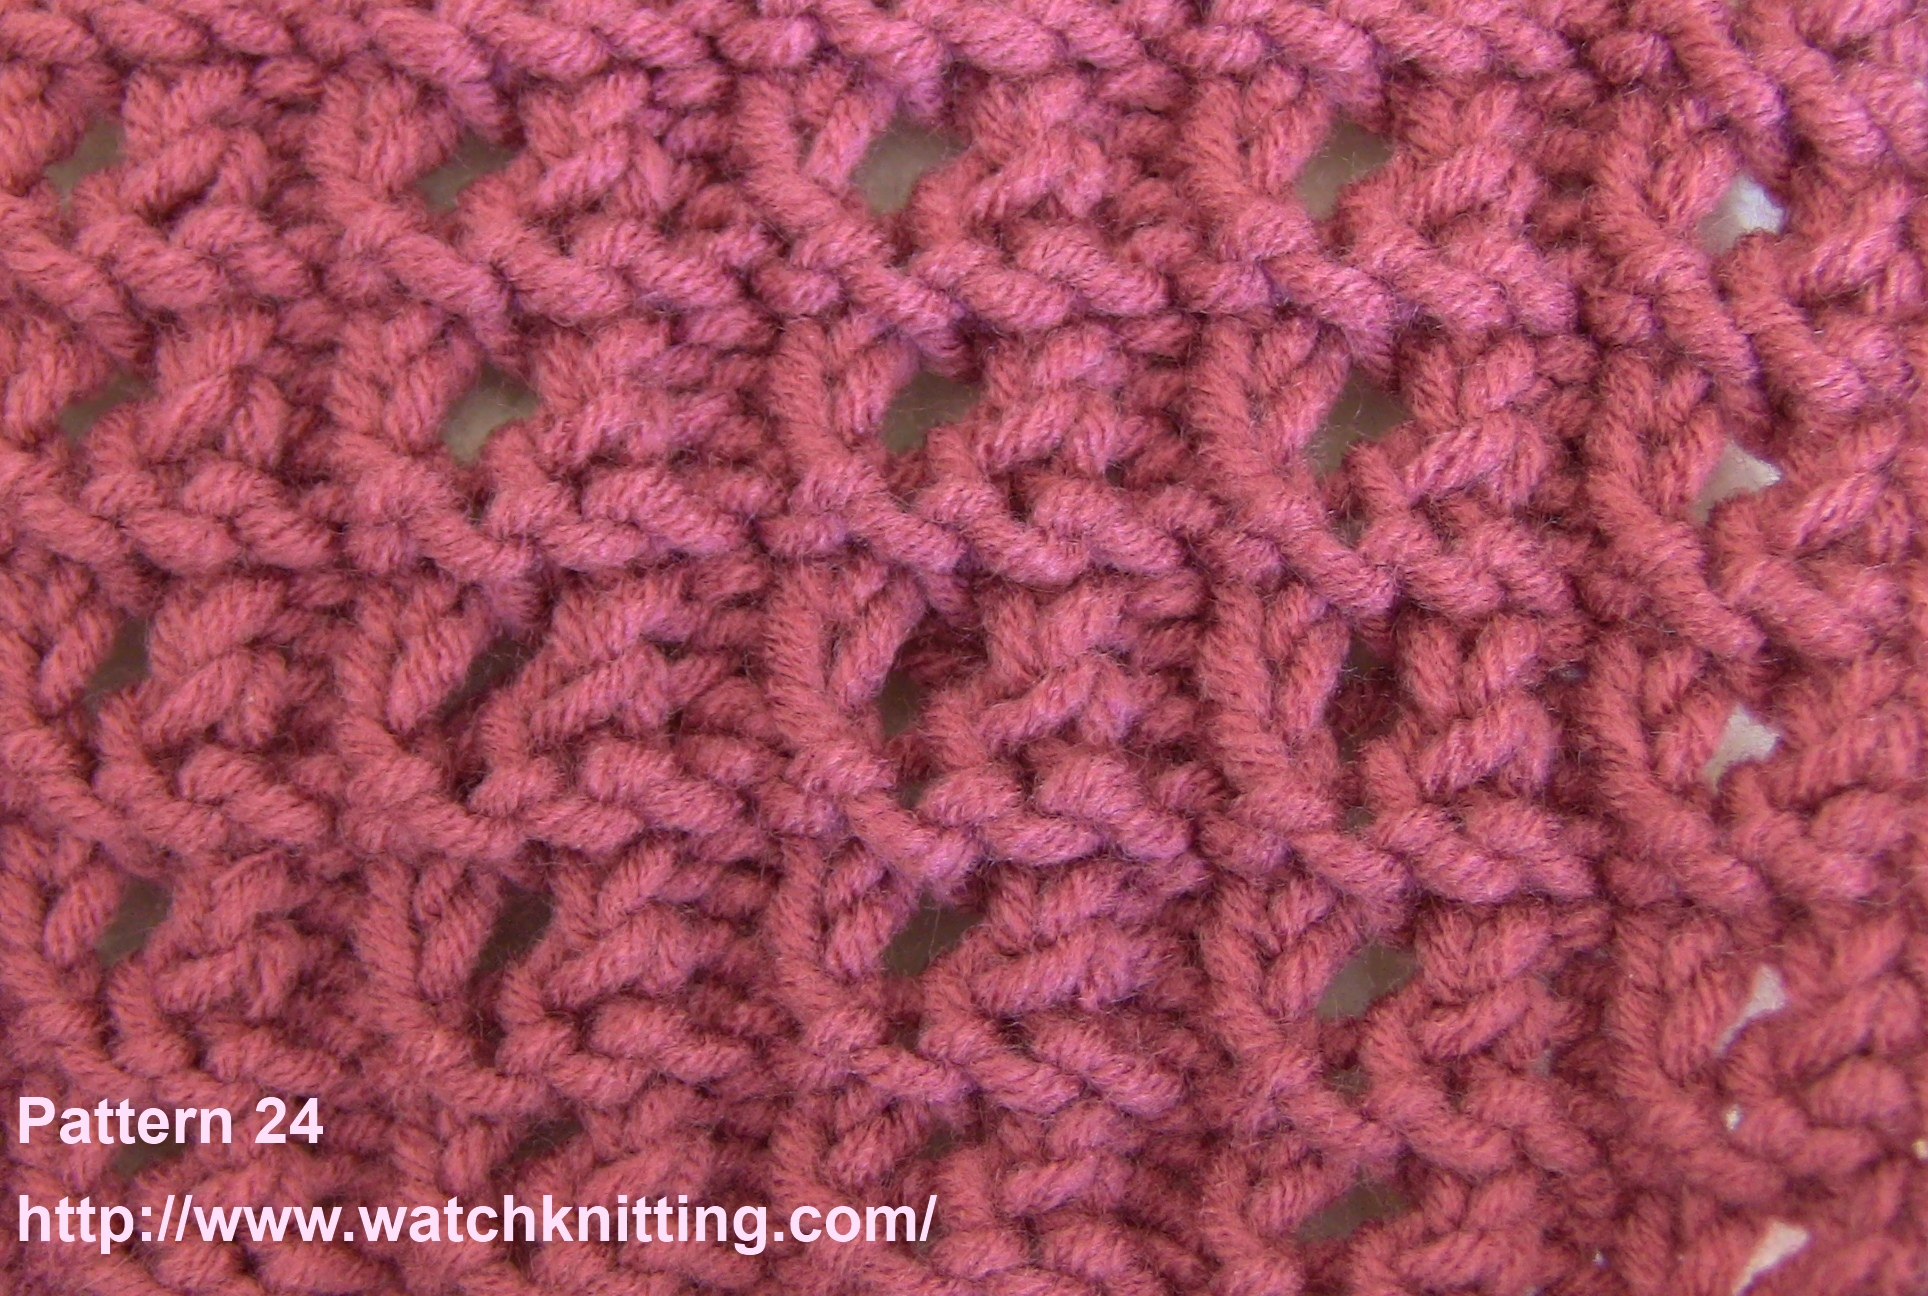 Knitting Stitches Gallery : Pattern 24 ( Striped Lace )- Lace Knitting Watch Knitting